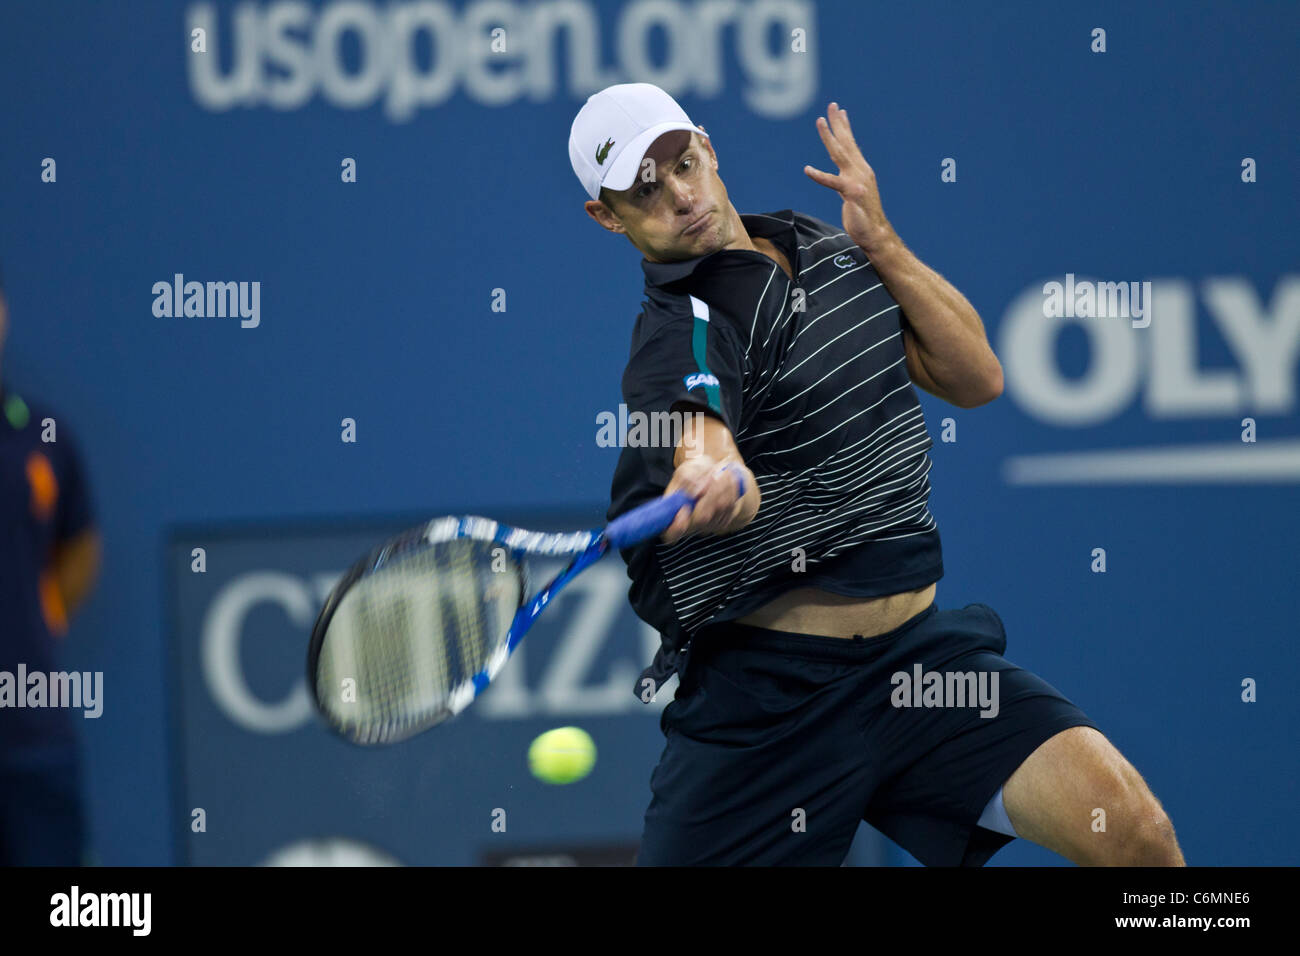 Andy Roddick (USA) competing at the 2011 US Open Tennis. - Stock Image